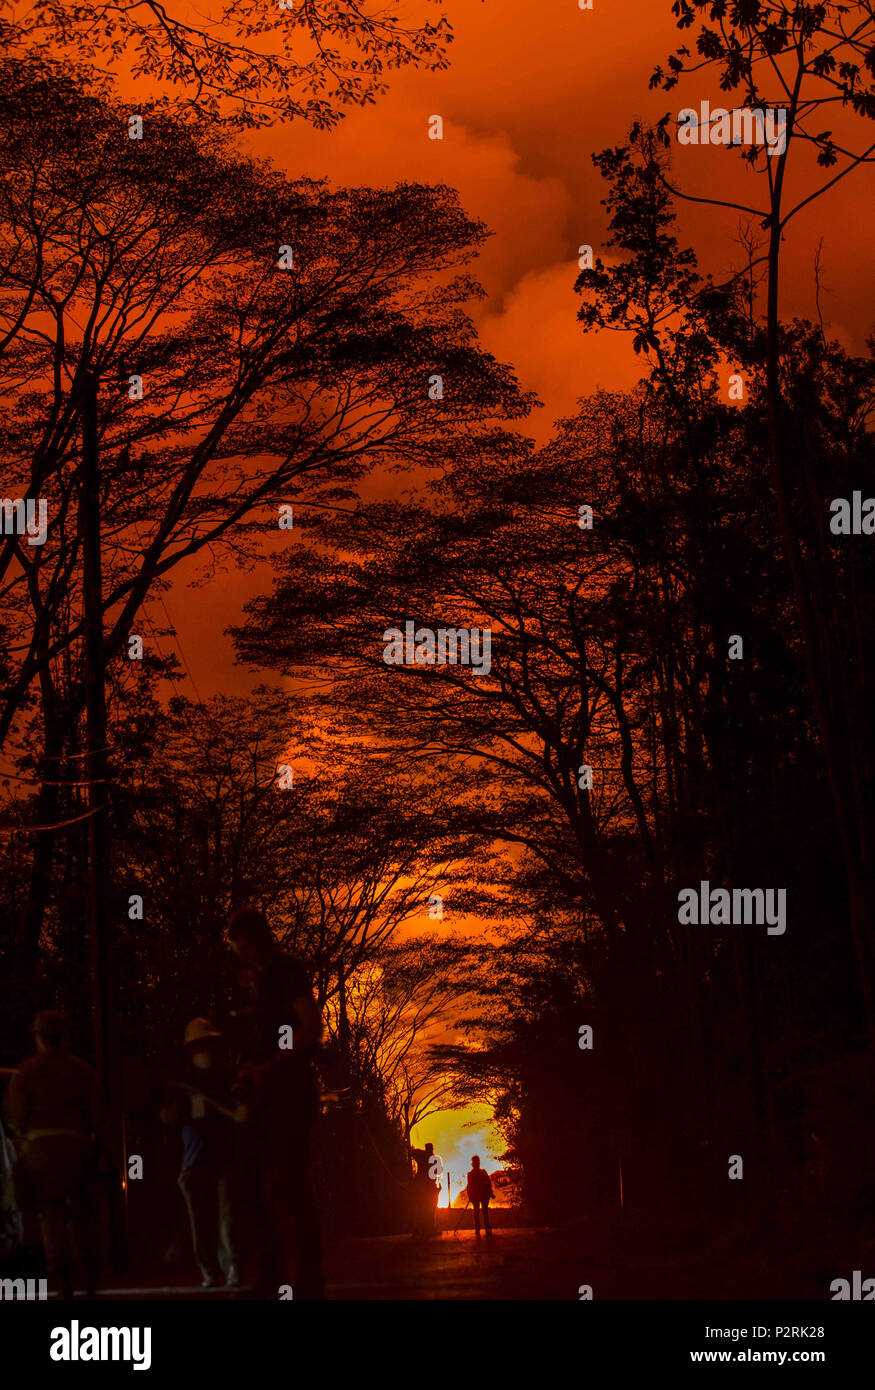 Pahoa, Hawaii, USA. 9th June, 2018. Fissure 8 illuminates the night sky above Leilani Estates at Luana Street due to chemicals emitted during the Kilauea Volcano eruption on Wednesday, June 6, 2018, in Pahoa, Hawaii. Credit: L.E. Baskow/ZUMA Wire/Alamy Live News - Stock Image